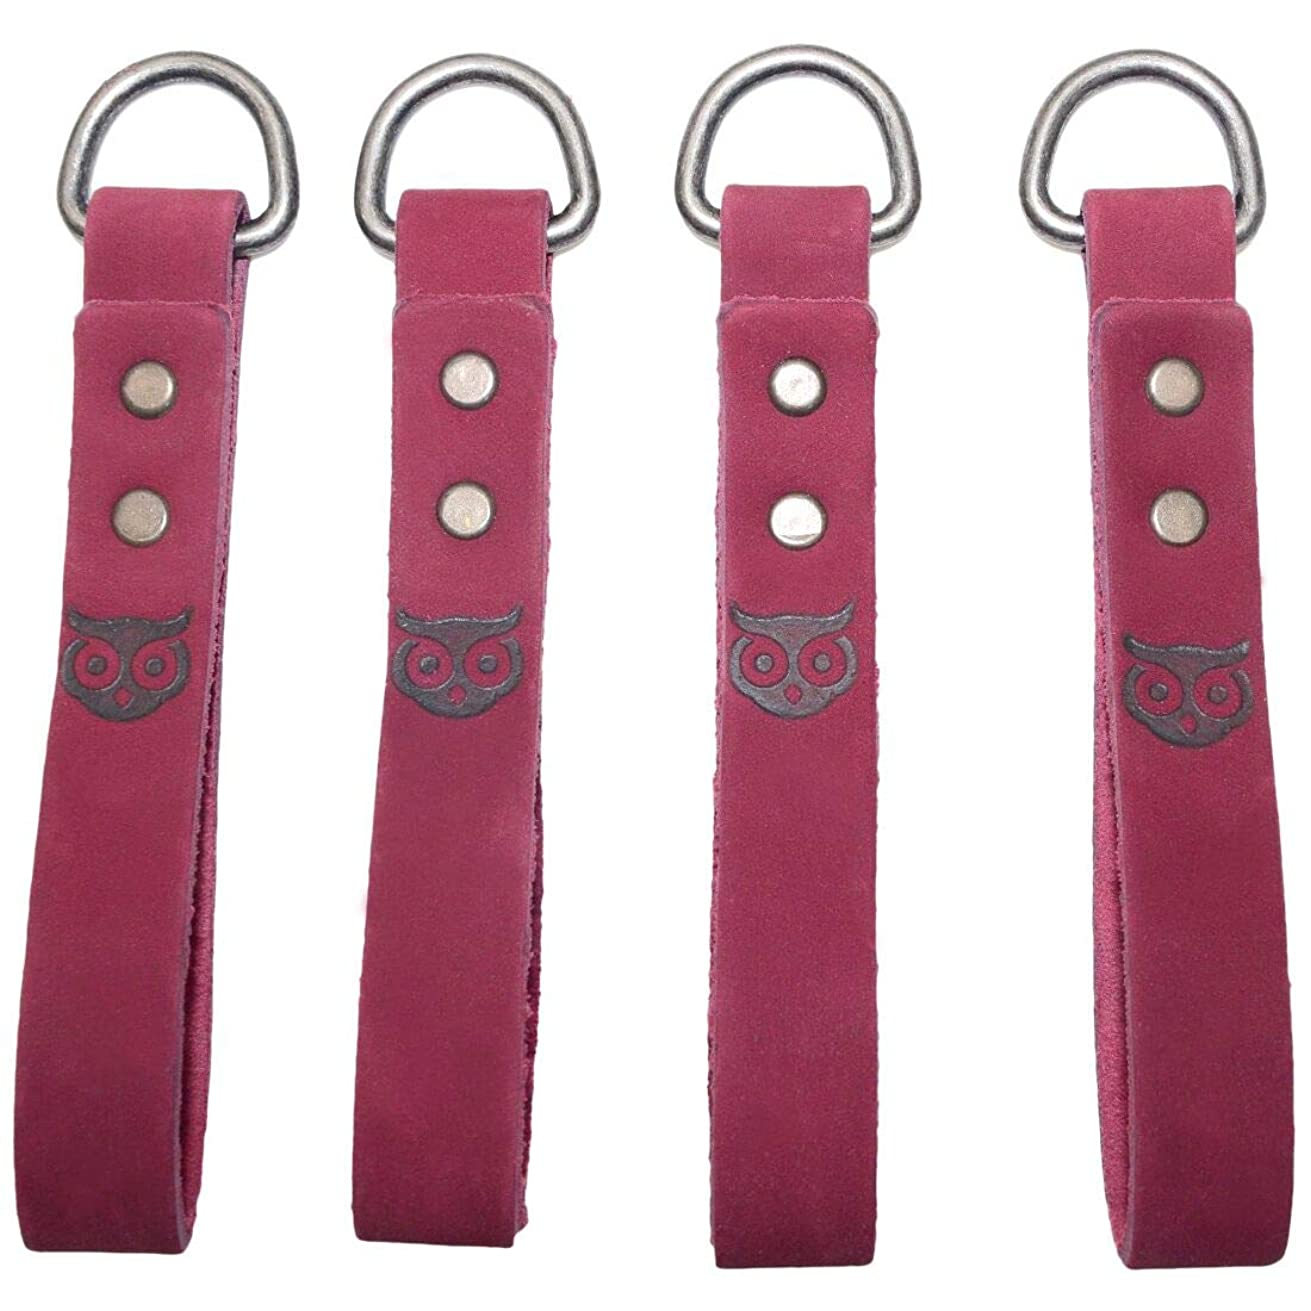 Thick Leather Heavy Duty Tool Belt Accessories Suspender Loop Attachment (4-Pack) Handmade by Hide & Drink :: Red Velvet Suede